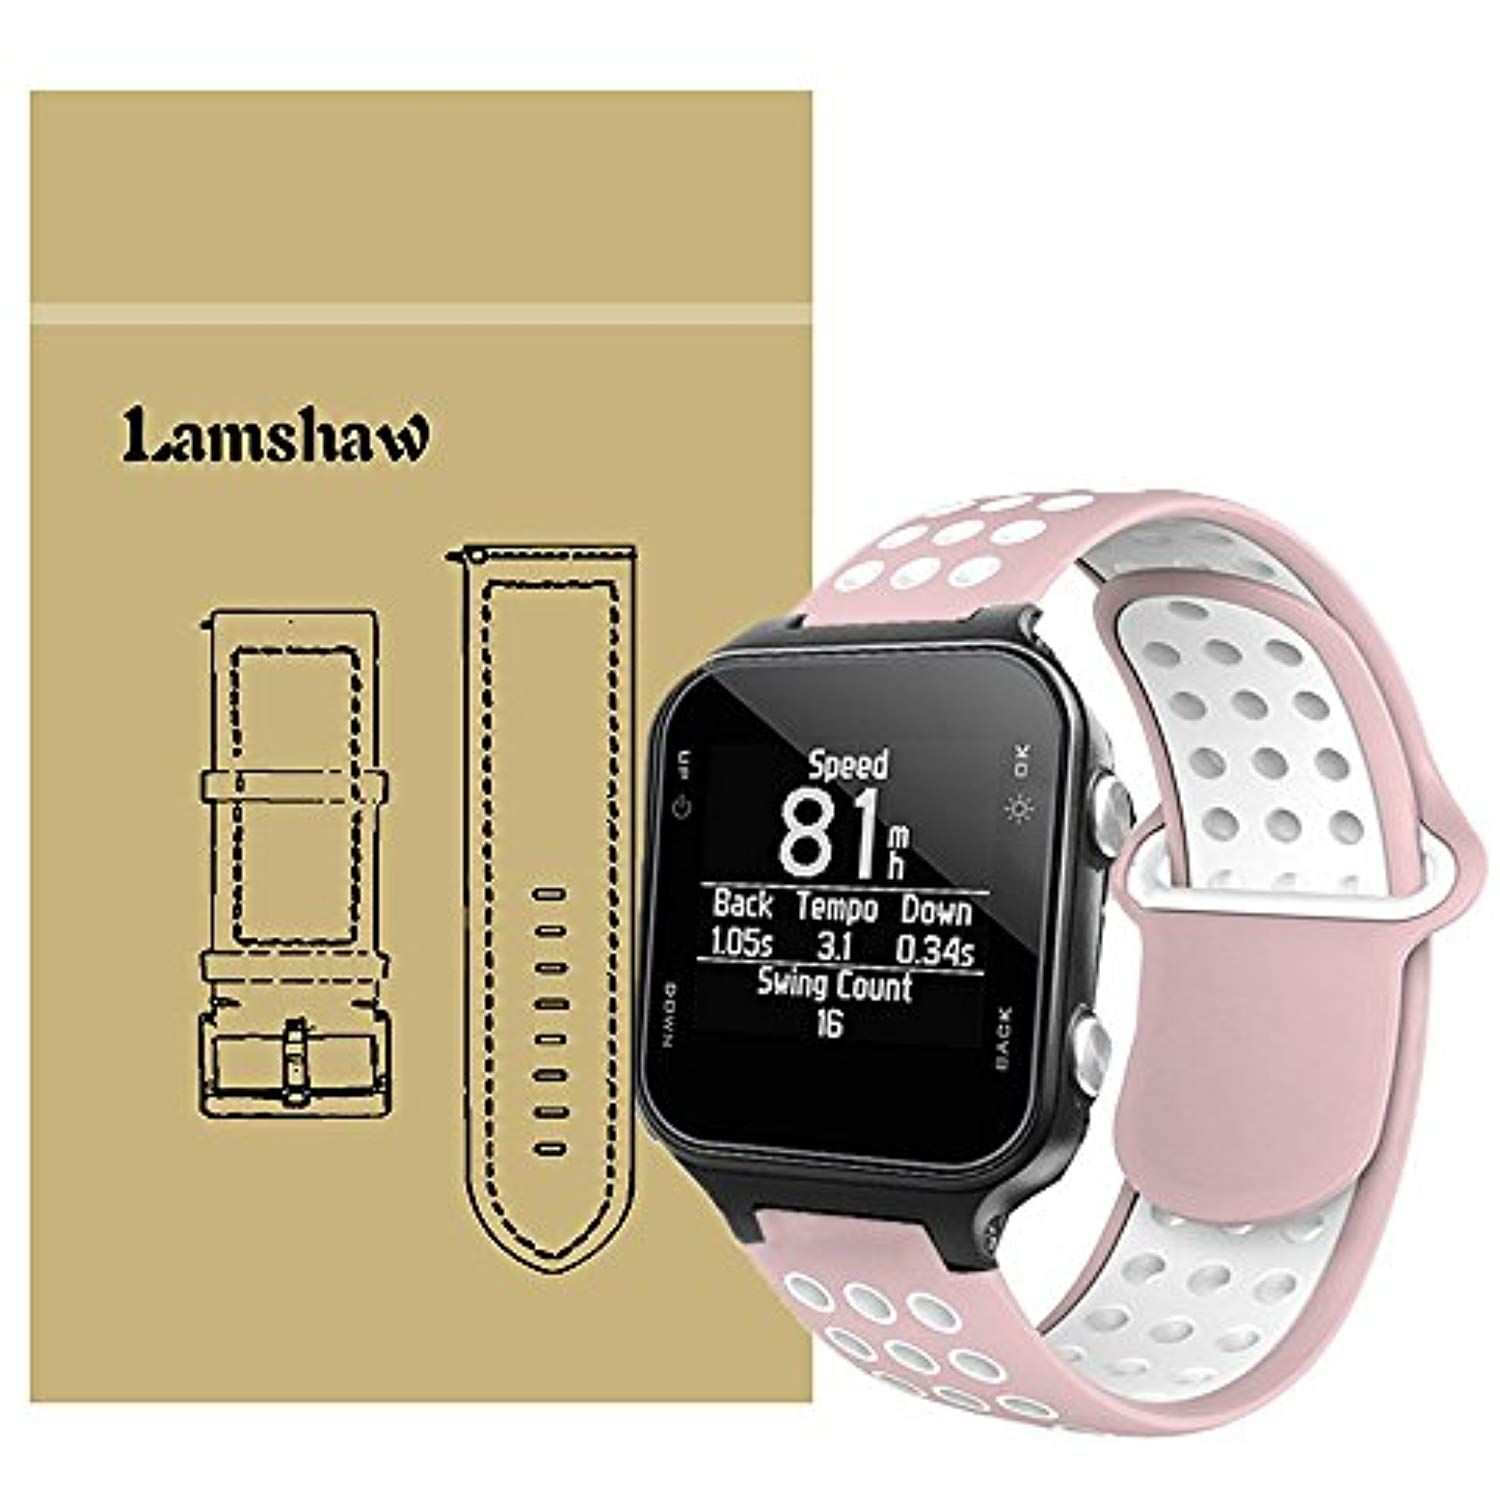 For Garmin approach S20 Bands, Lamshaw Silicone Sport Band